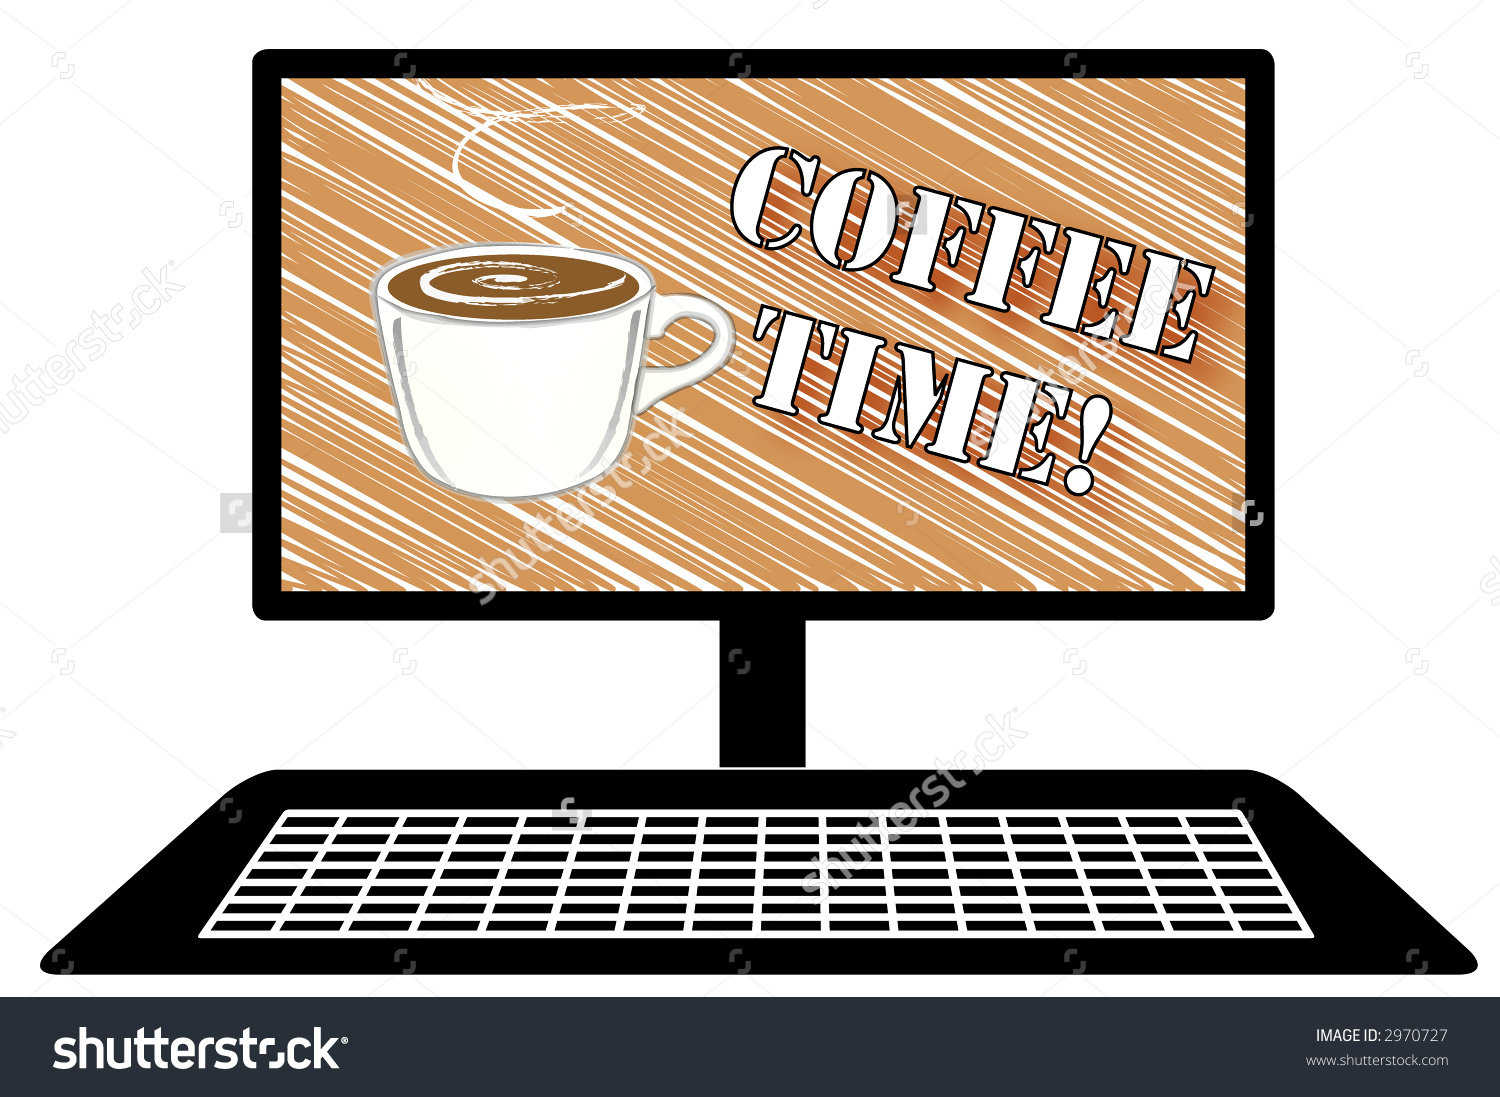 Illustration Of Desktop Computer With Sketch Of Mug Of Coffee And.